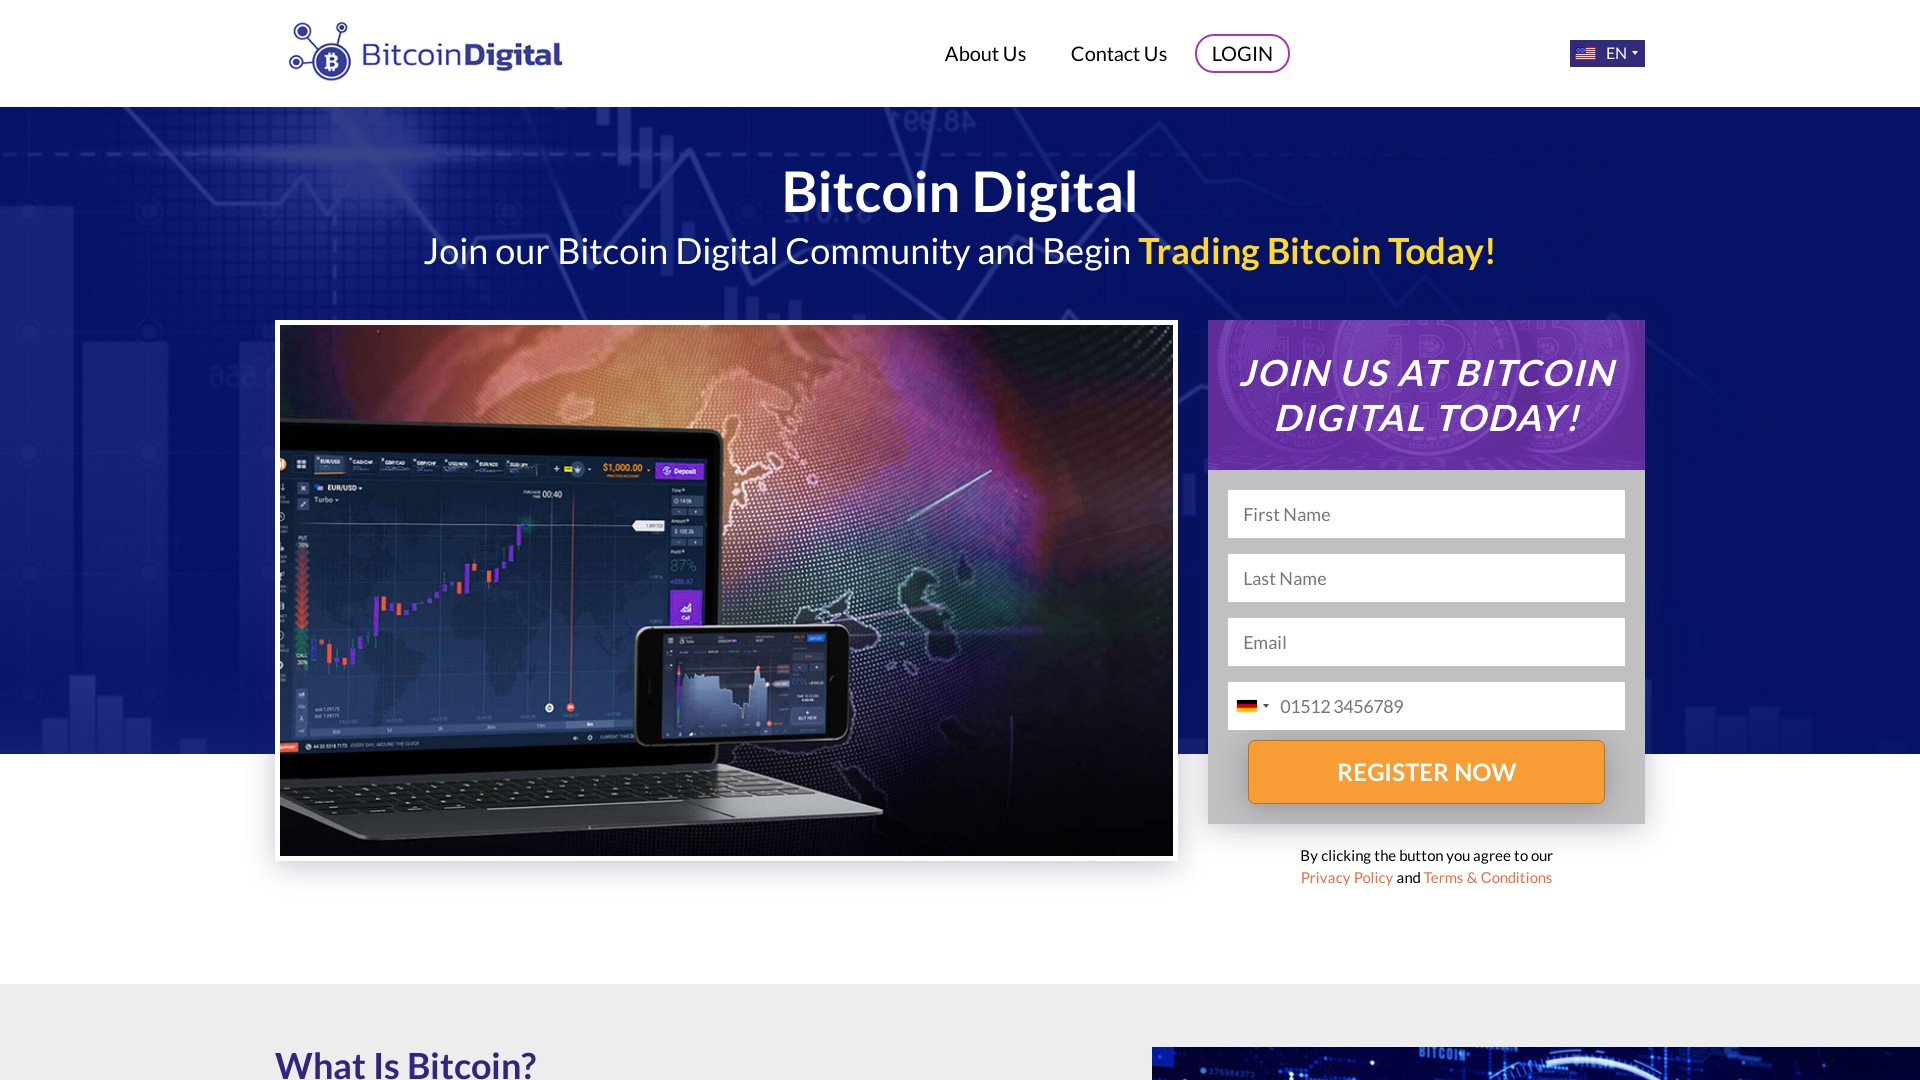 Is Bitcoin Digital a Scam? Binary Trading Options